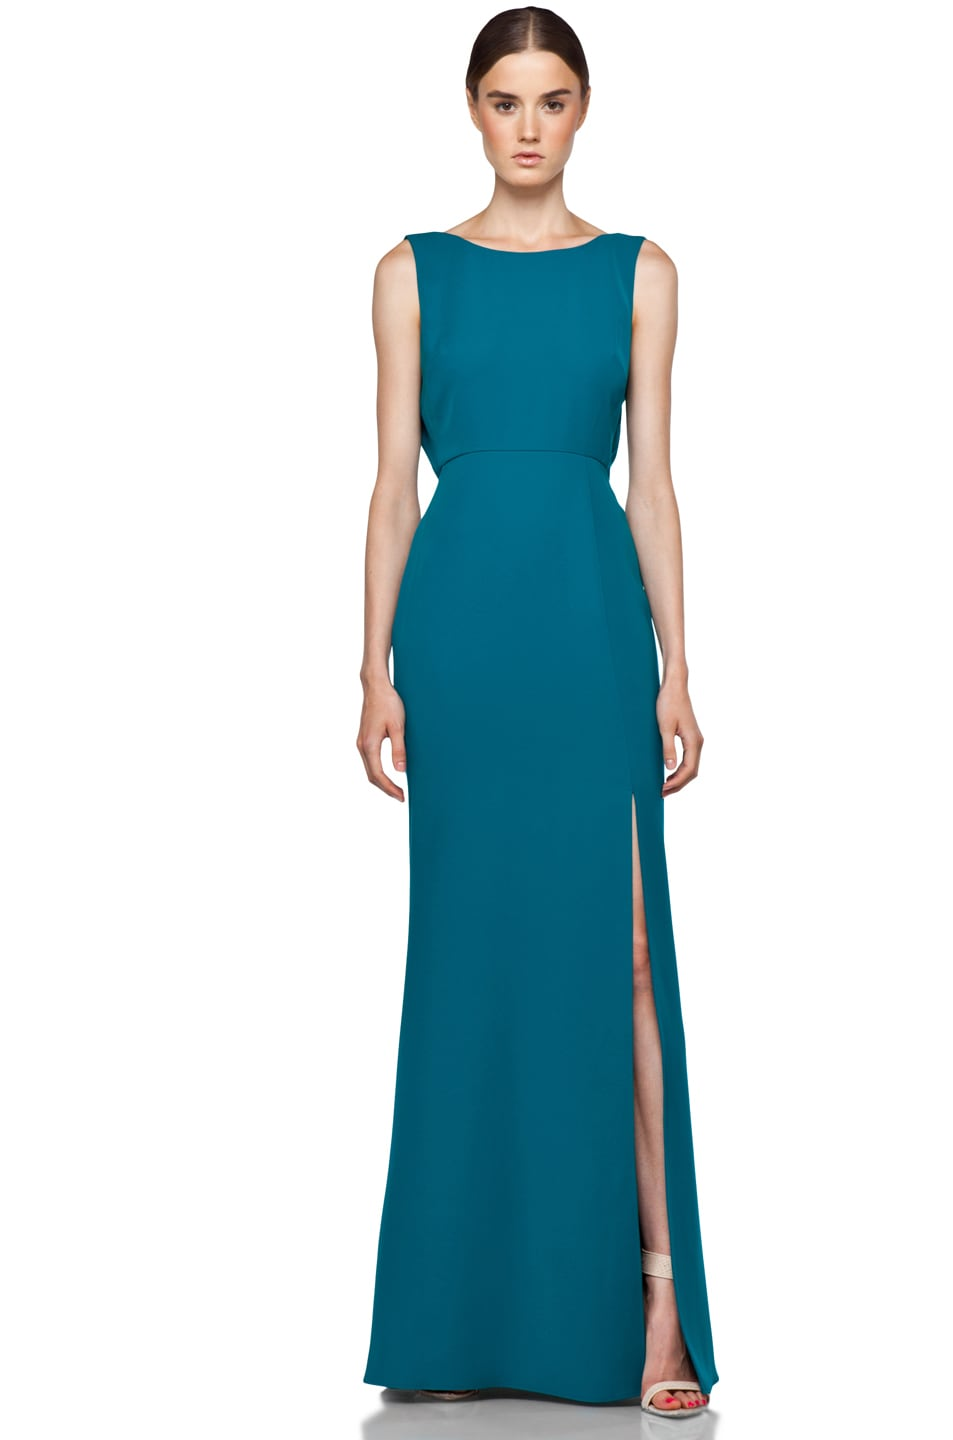 Rachel Zoe Kassie Cowl Back Gown in Teal | FWRD